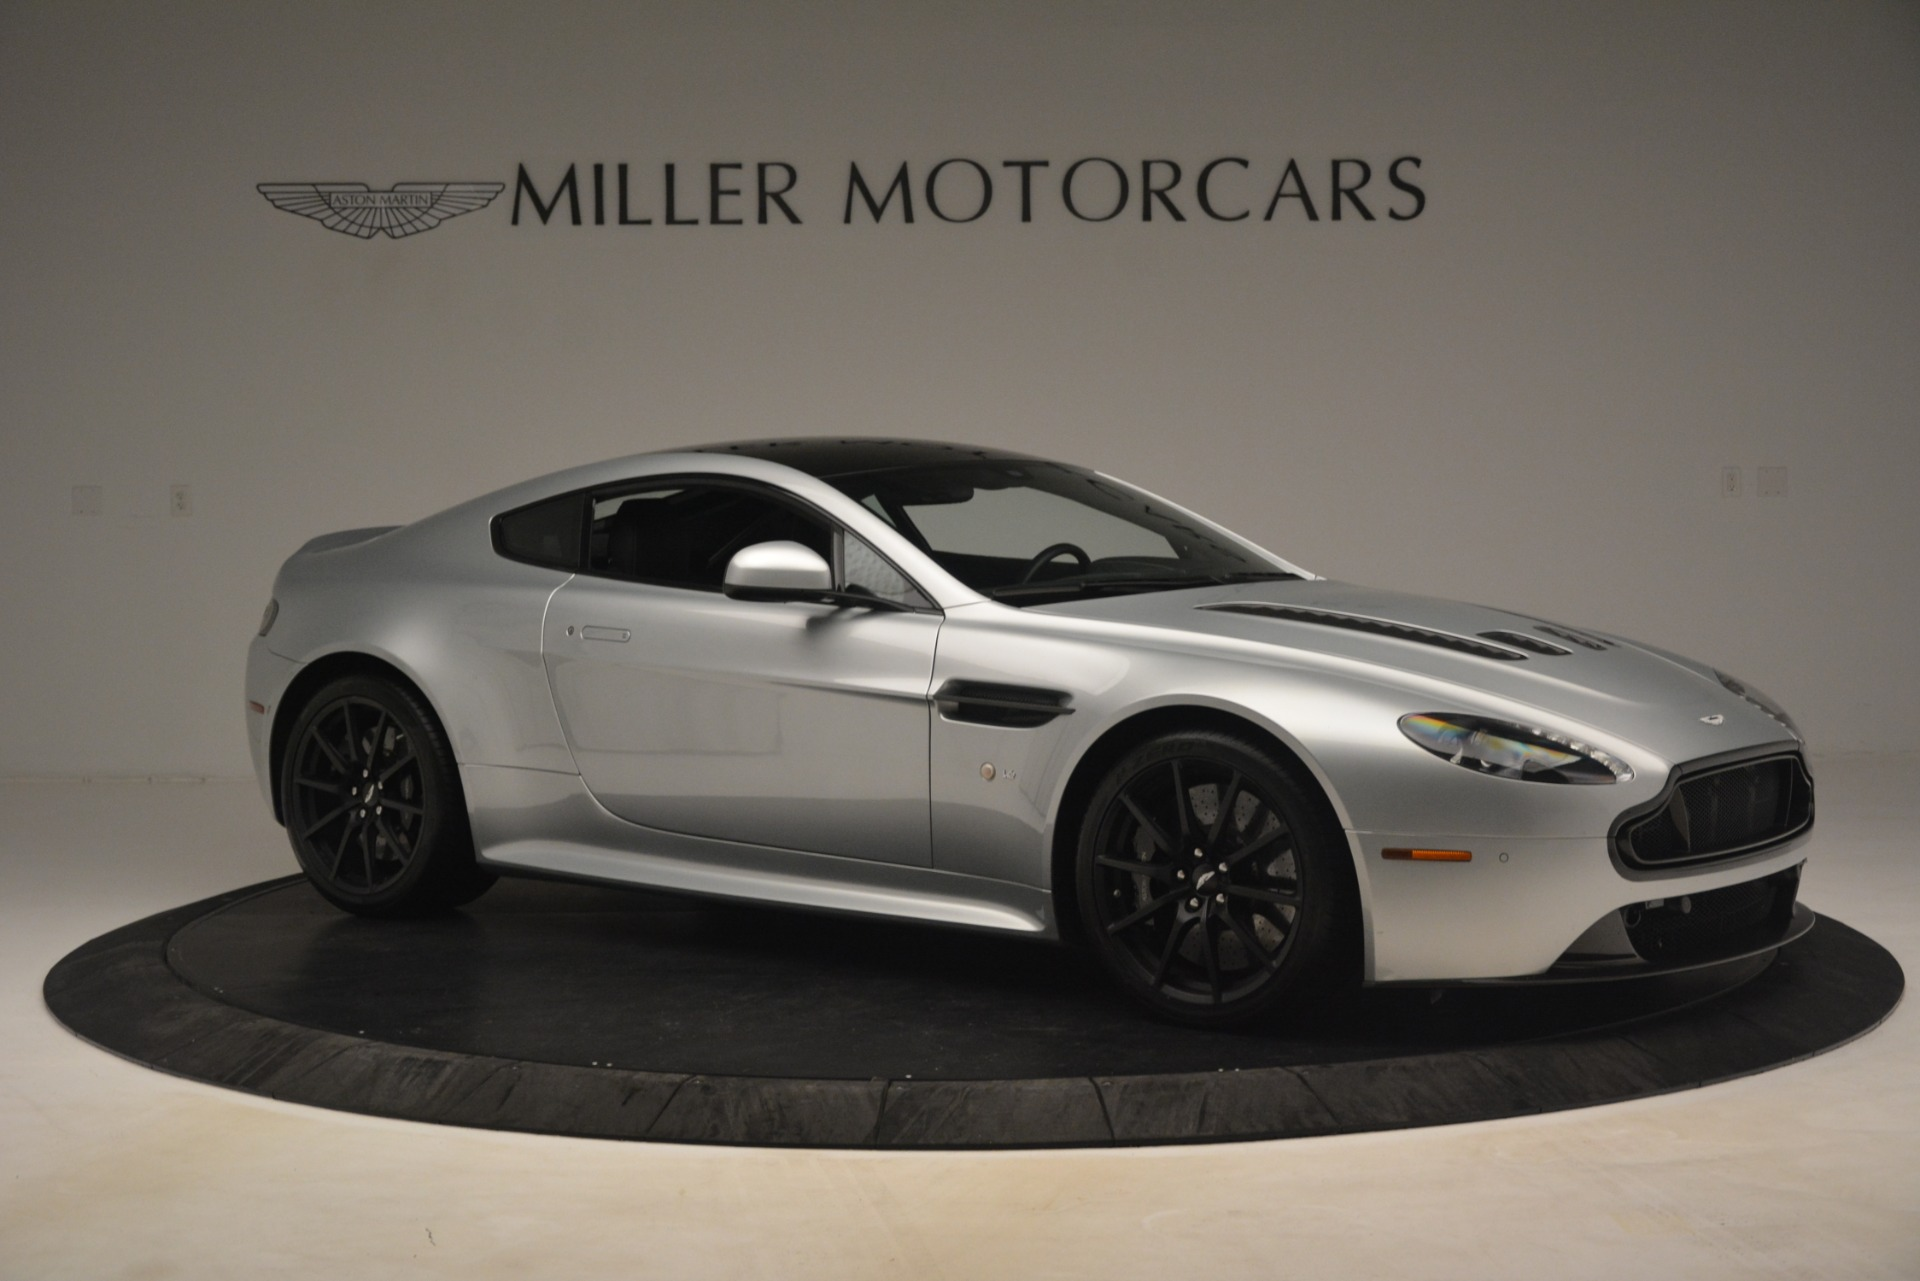 Pre Owned 2015 Aston Martin V12 Vantage S Coupe For Sale Special Pricing Aston Martin Of Greenwich Stock 7577